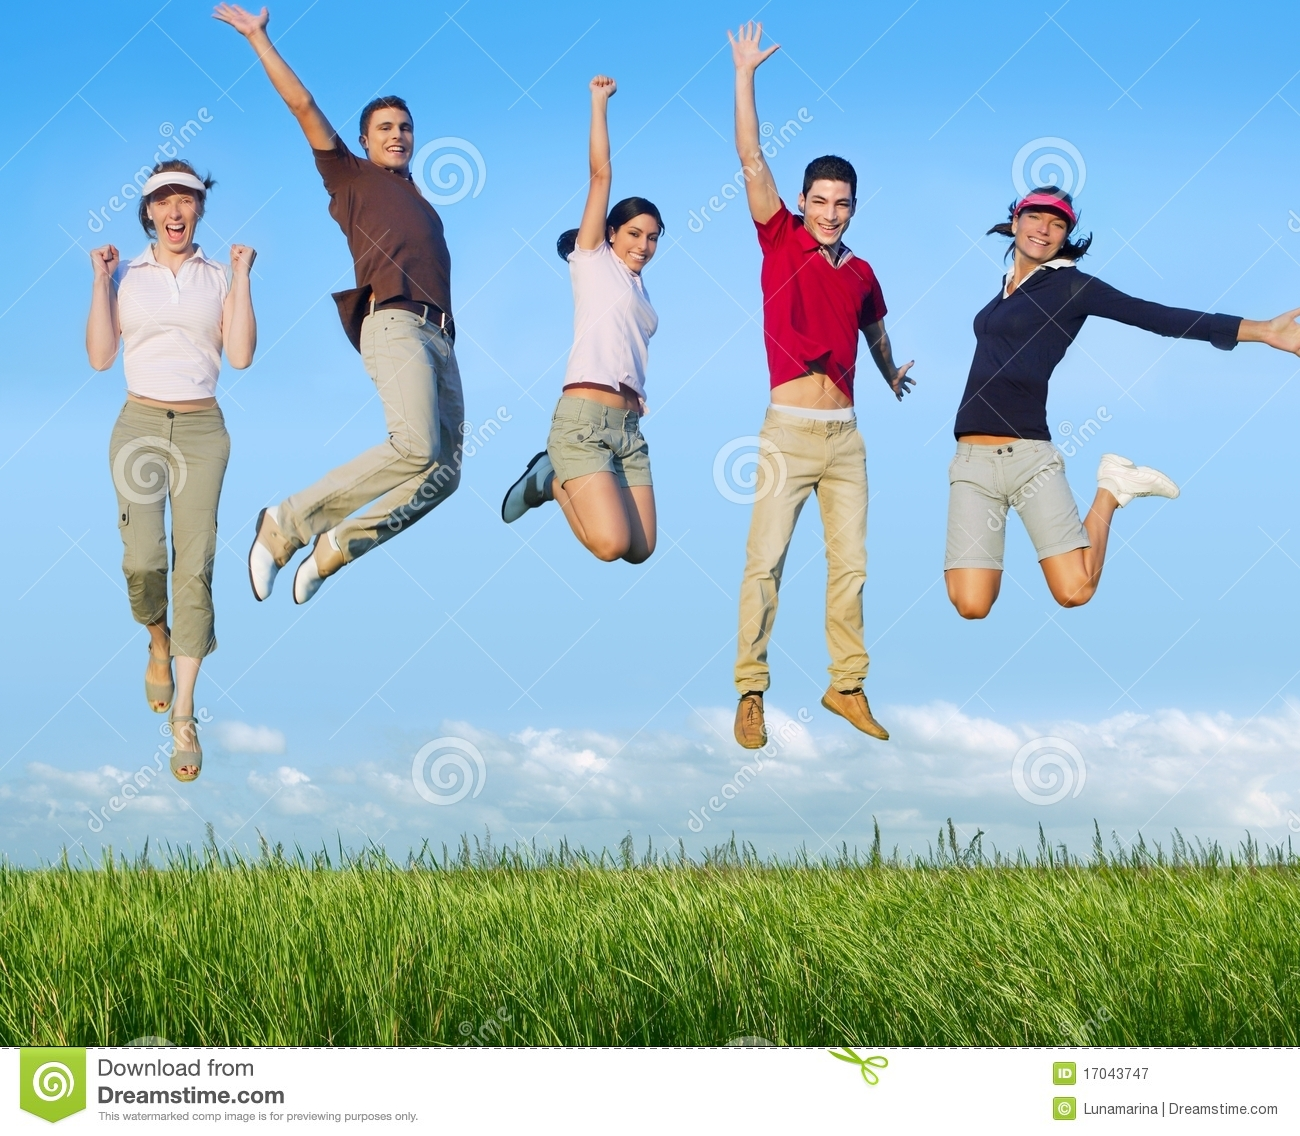 Royalty Free Stock Photography: Jumping young people happy group in ...